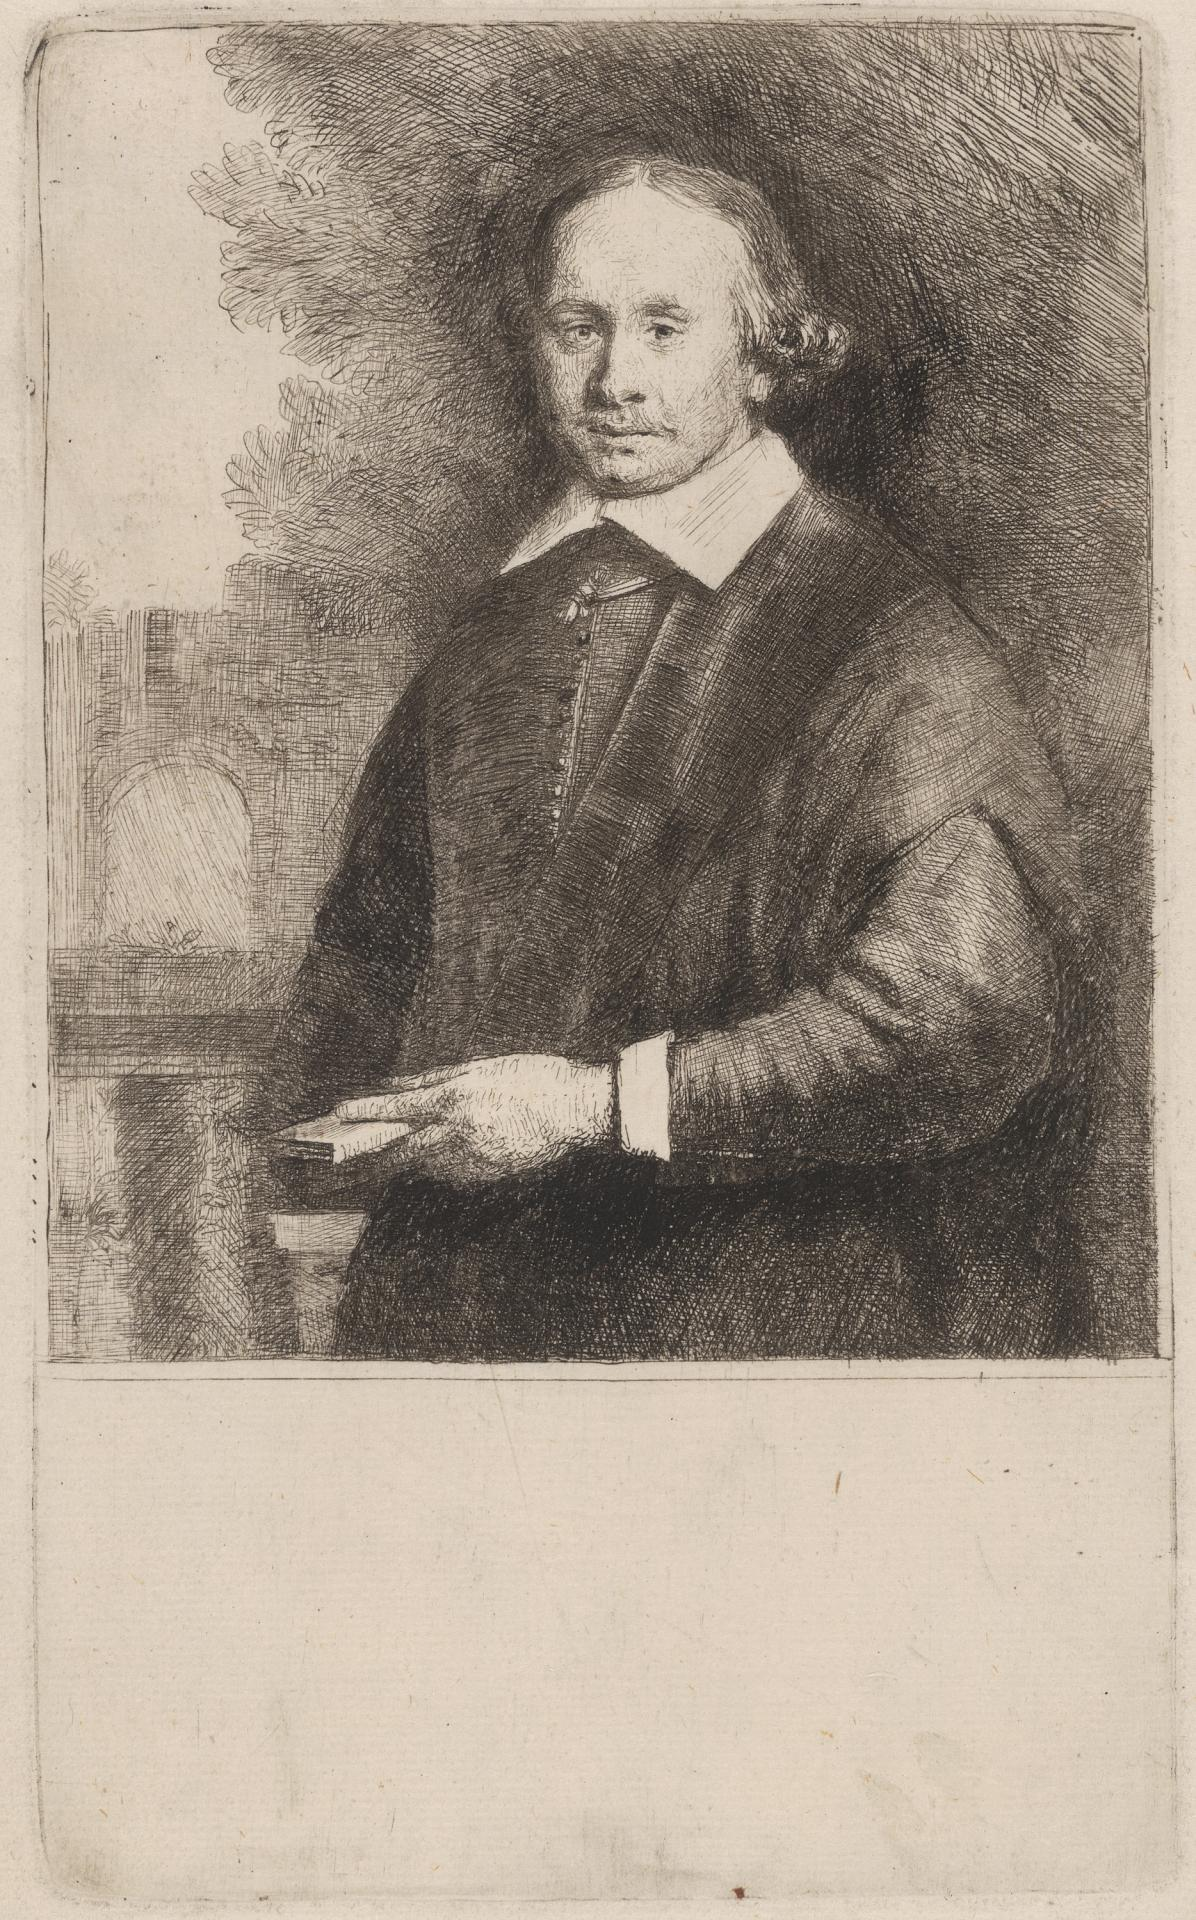 Jan Antonides van der Linden, Professor of Medicine